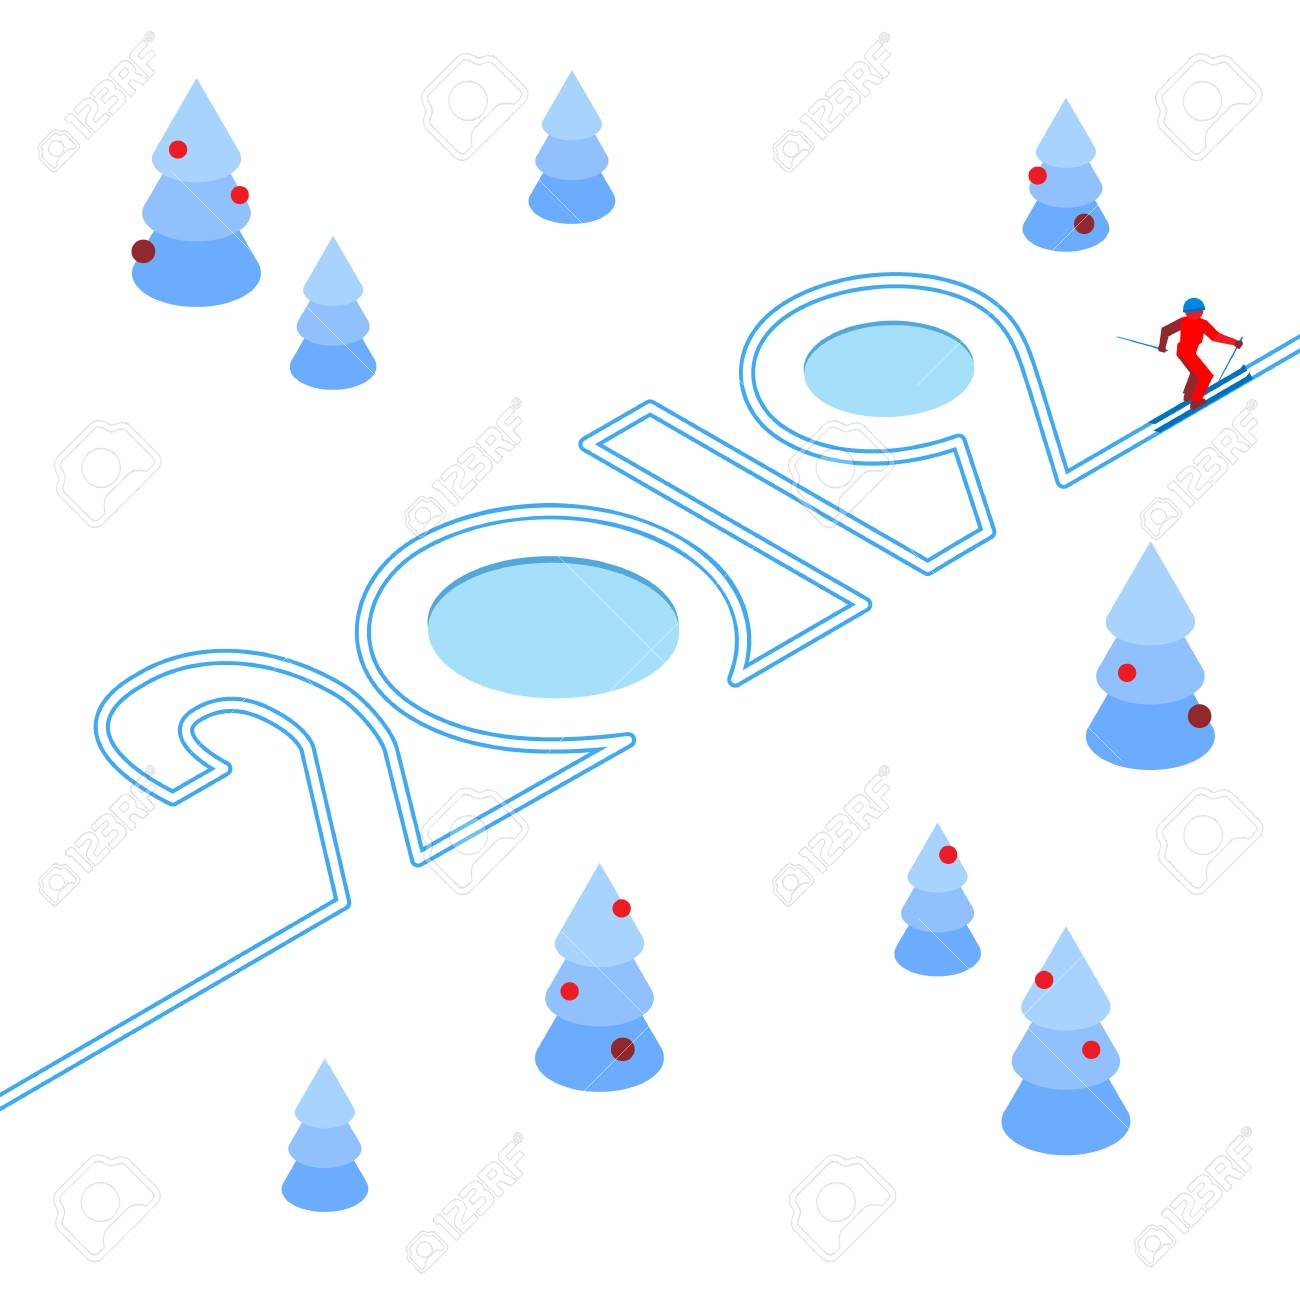 New Year 2019 Concept Skier Has Left A Trace In The Form Of